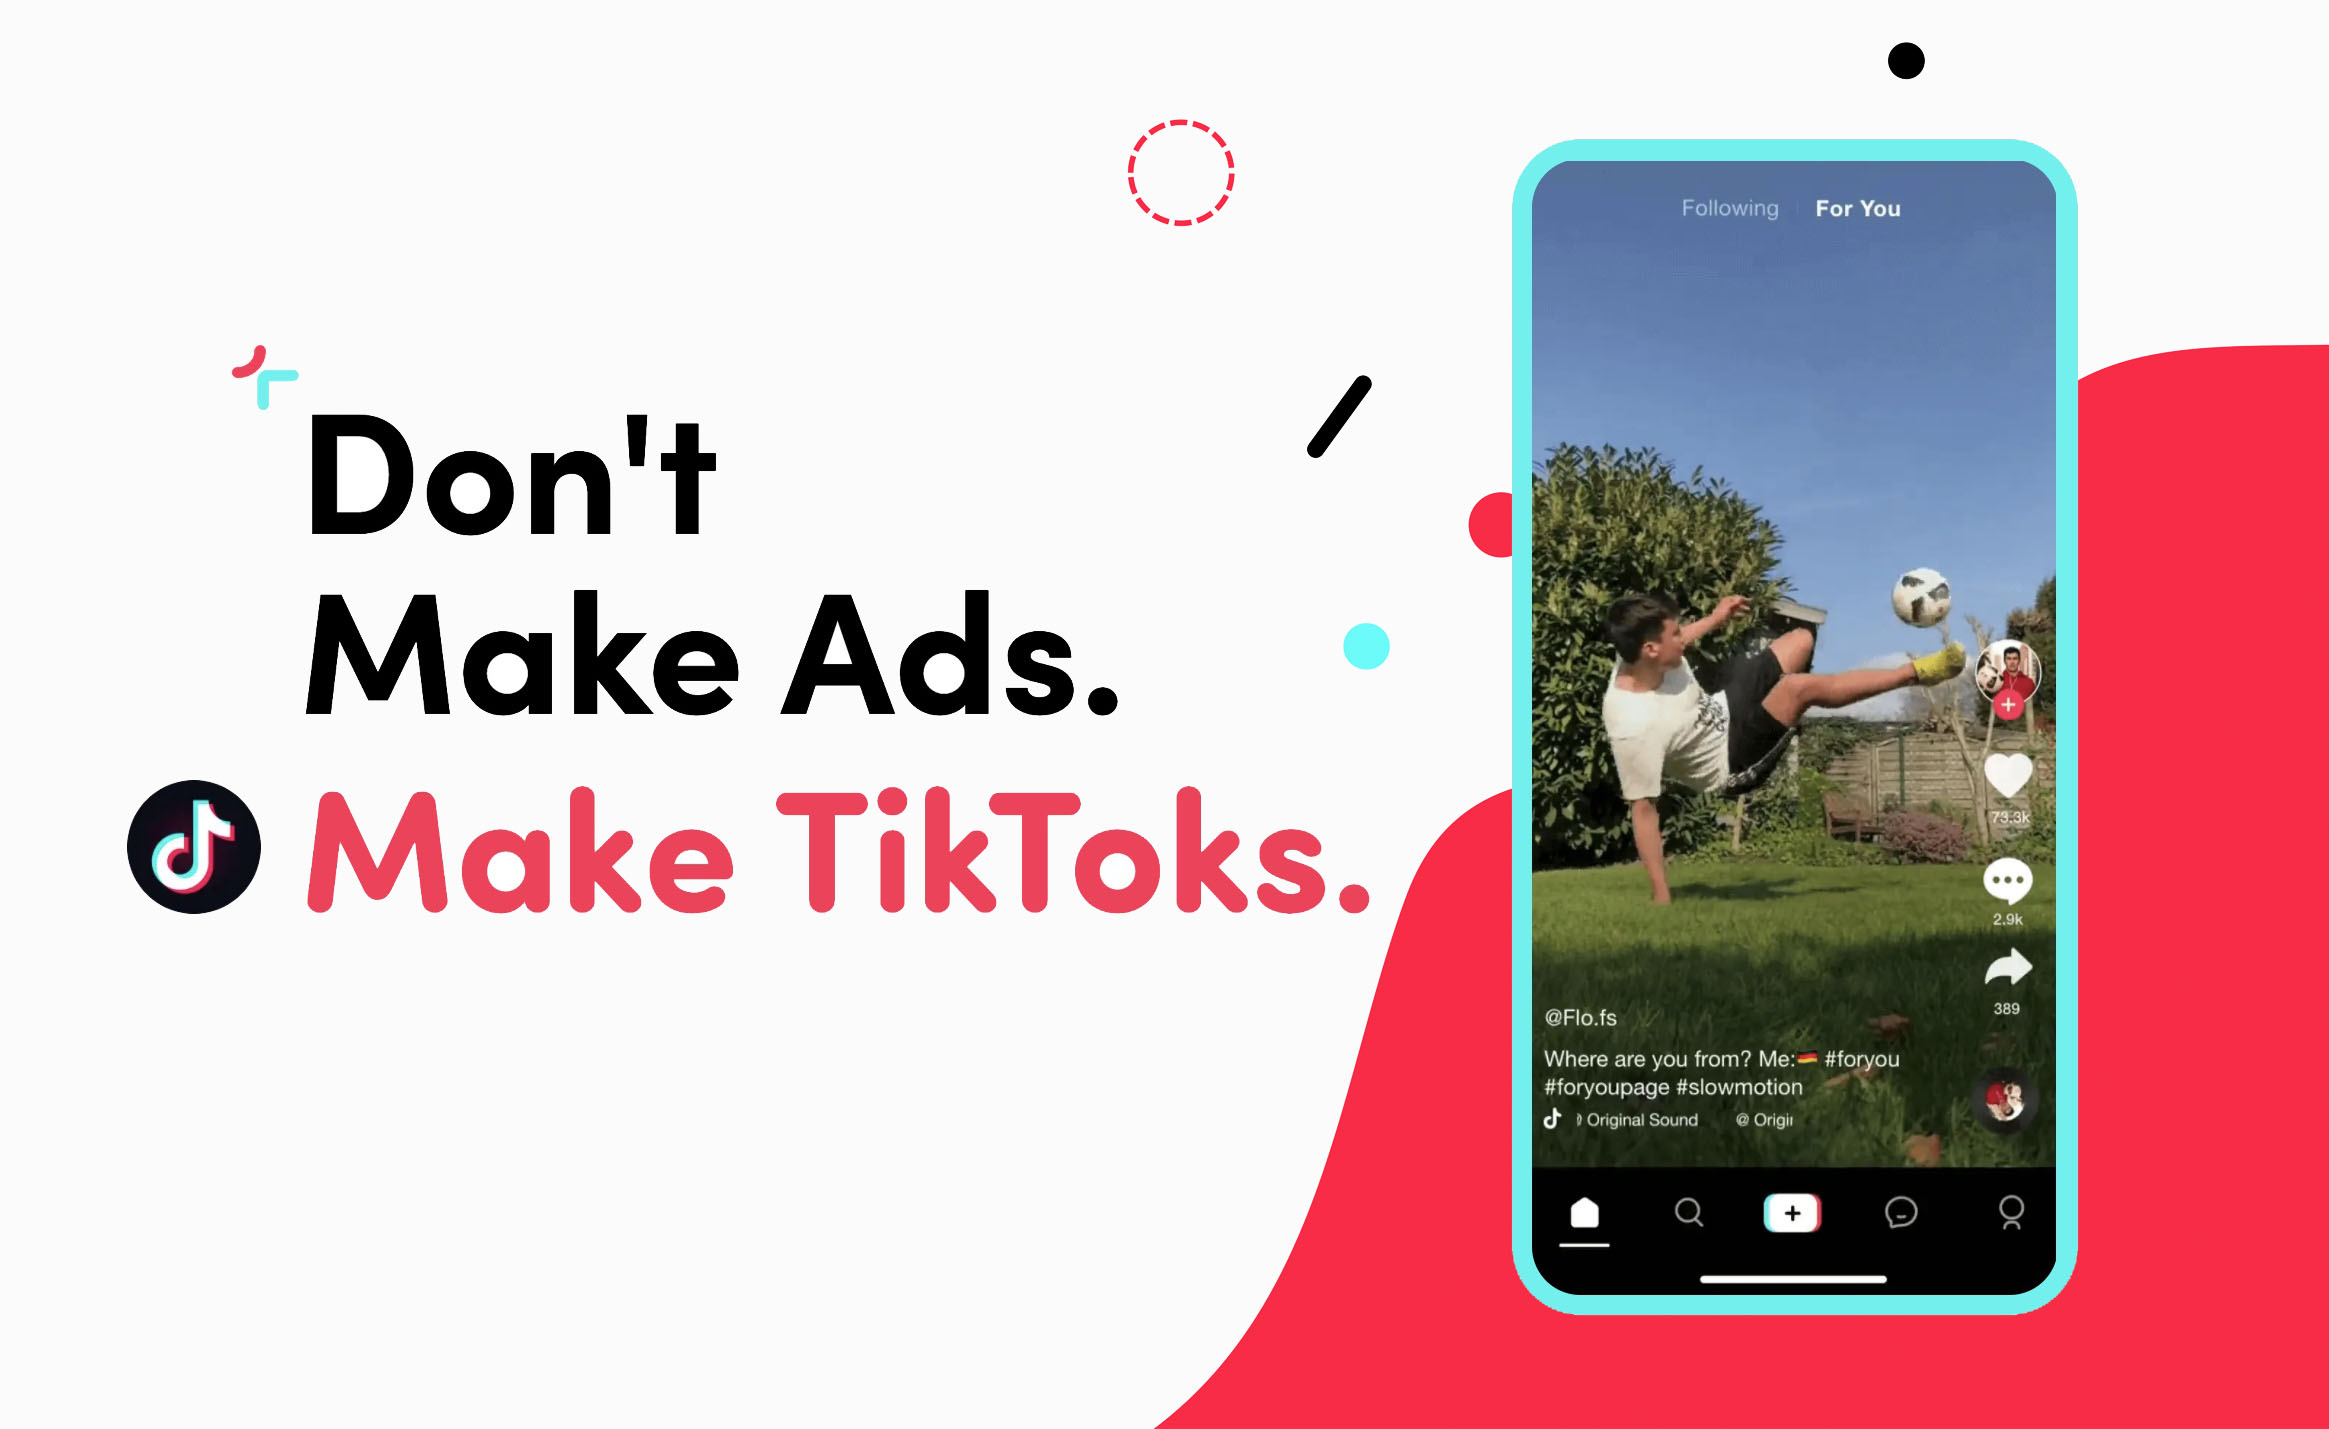 five-ways-smbs-can-scale-up-their-tiktok-campaigns-while-maintaining-a-solid-roi